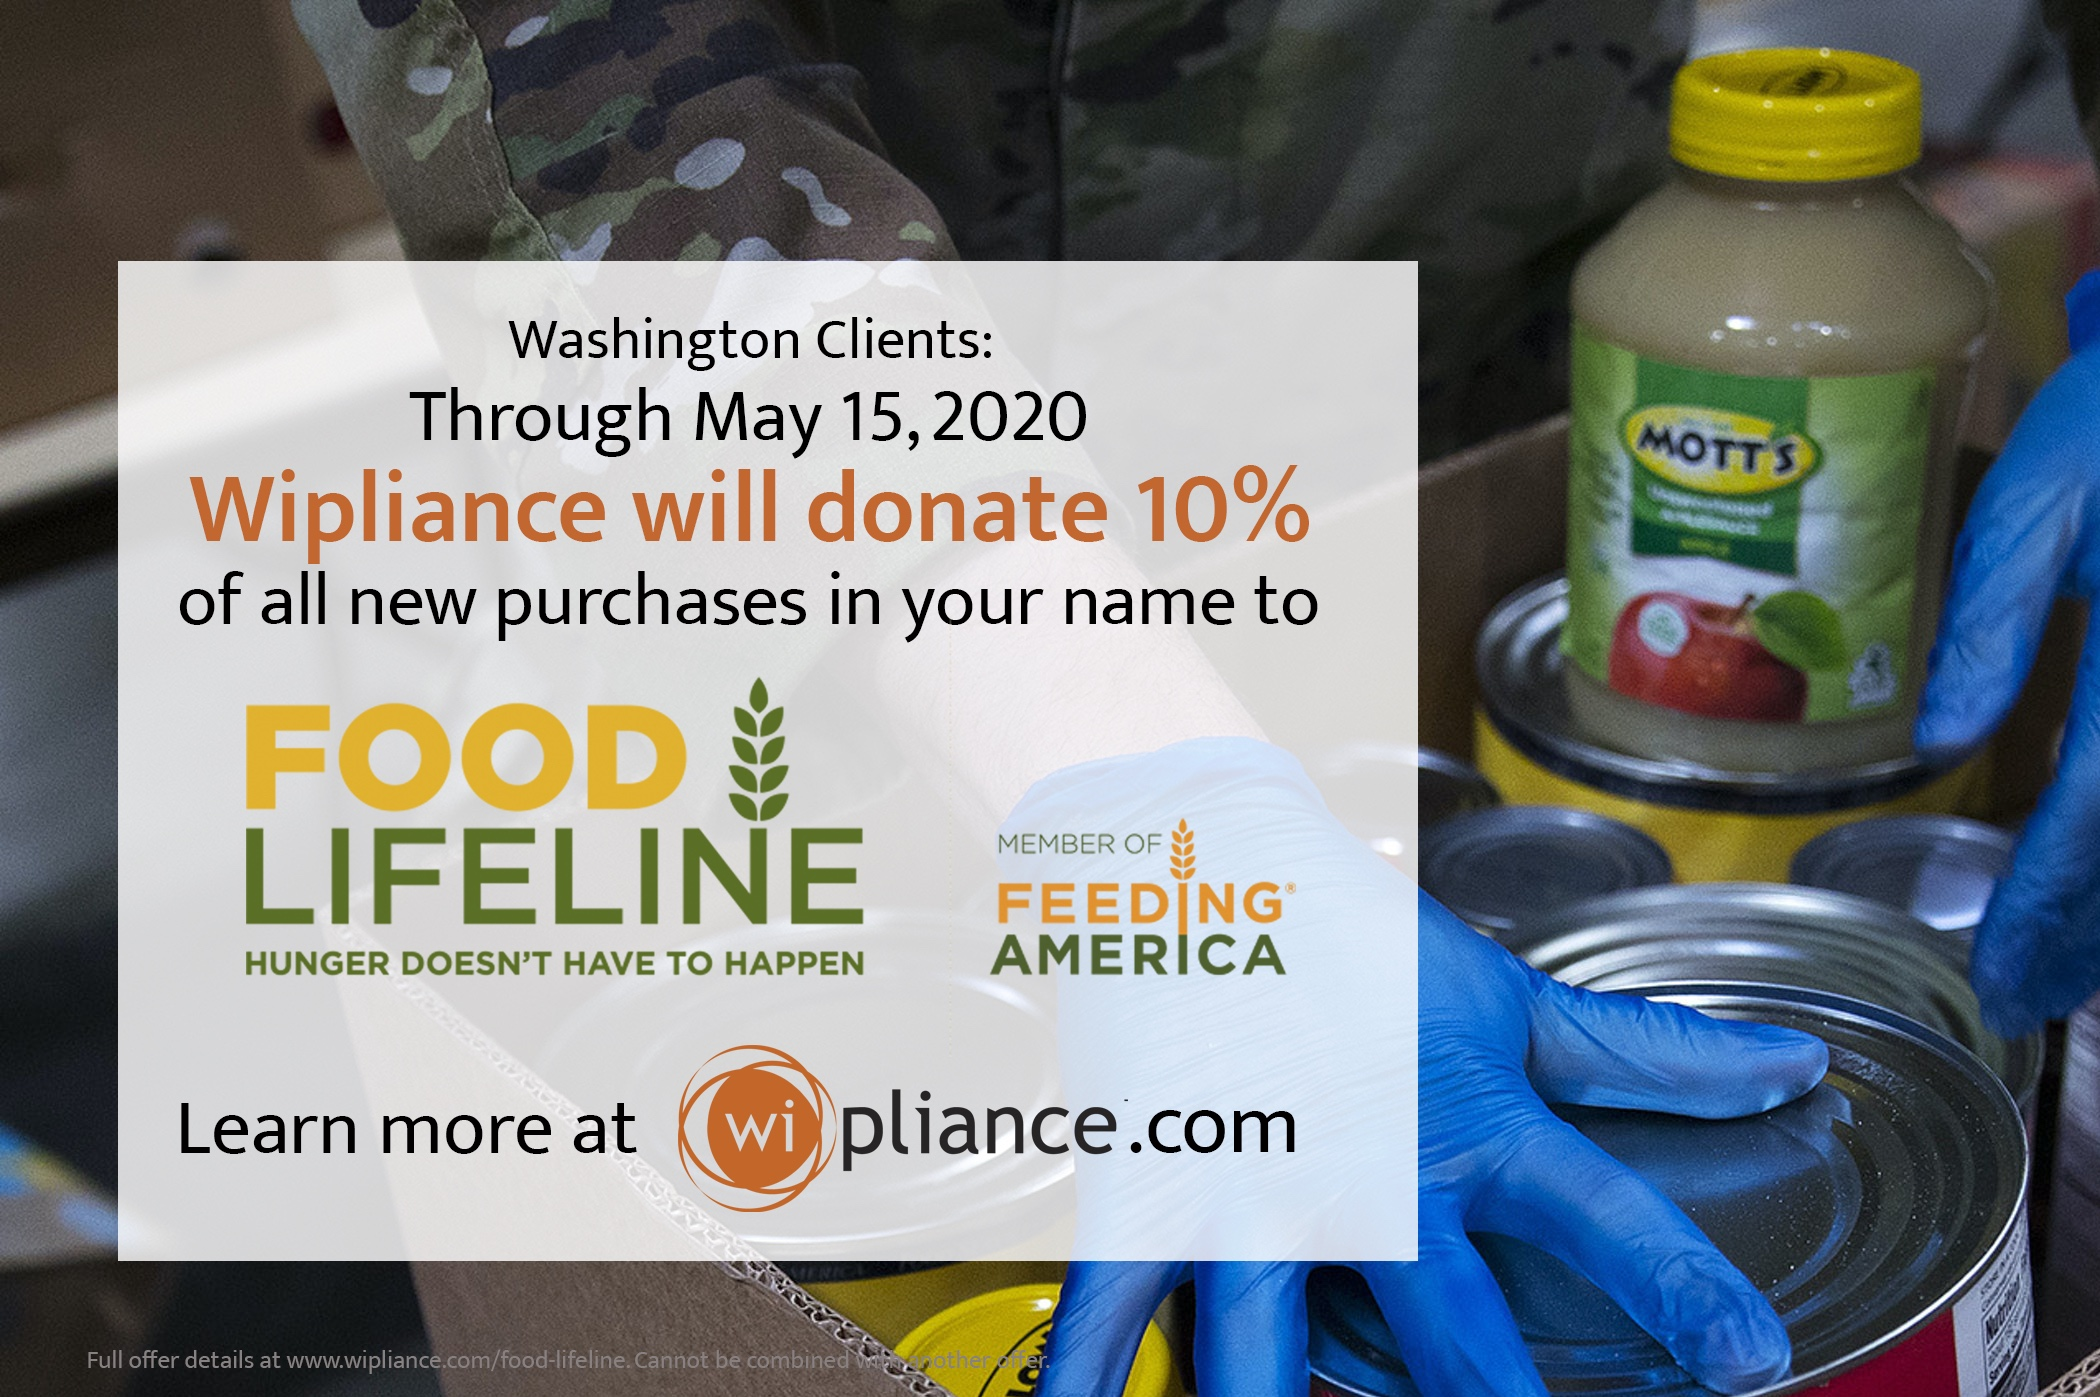 Now Through May 15- Wipliance to donate 10% of New Projects to Food Lifeline